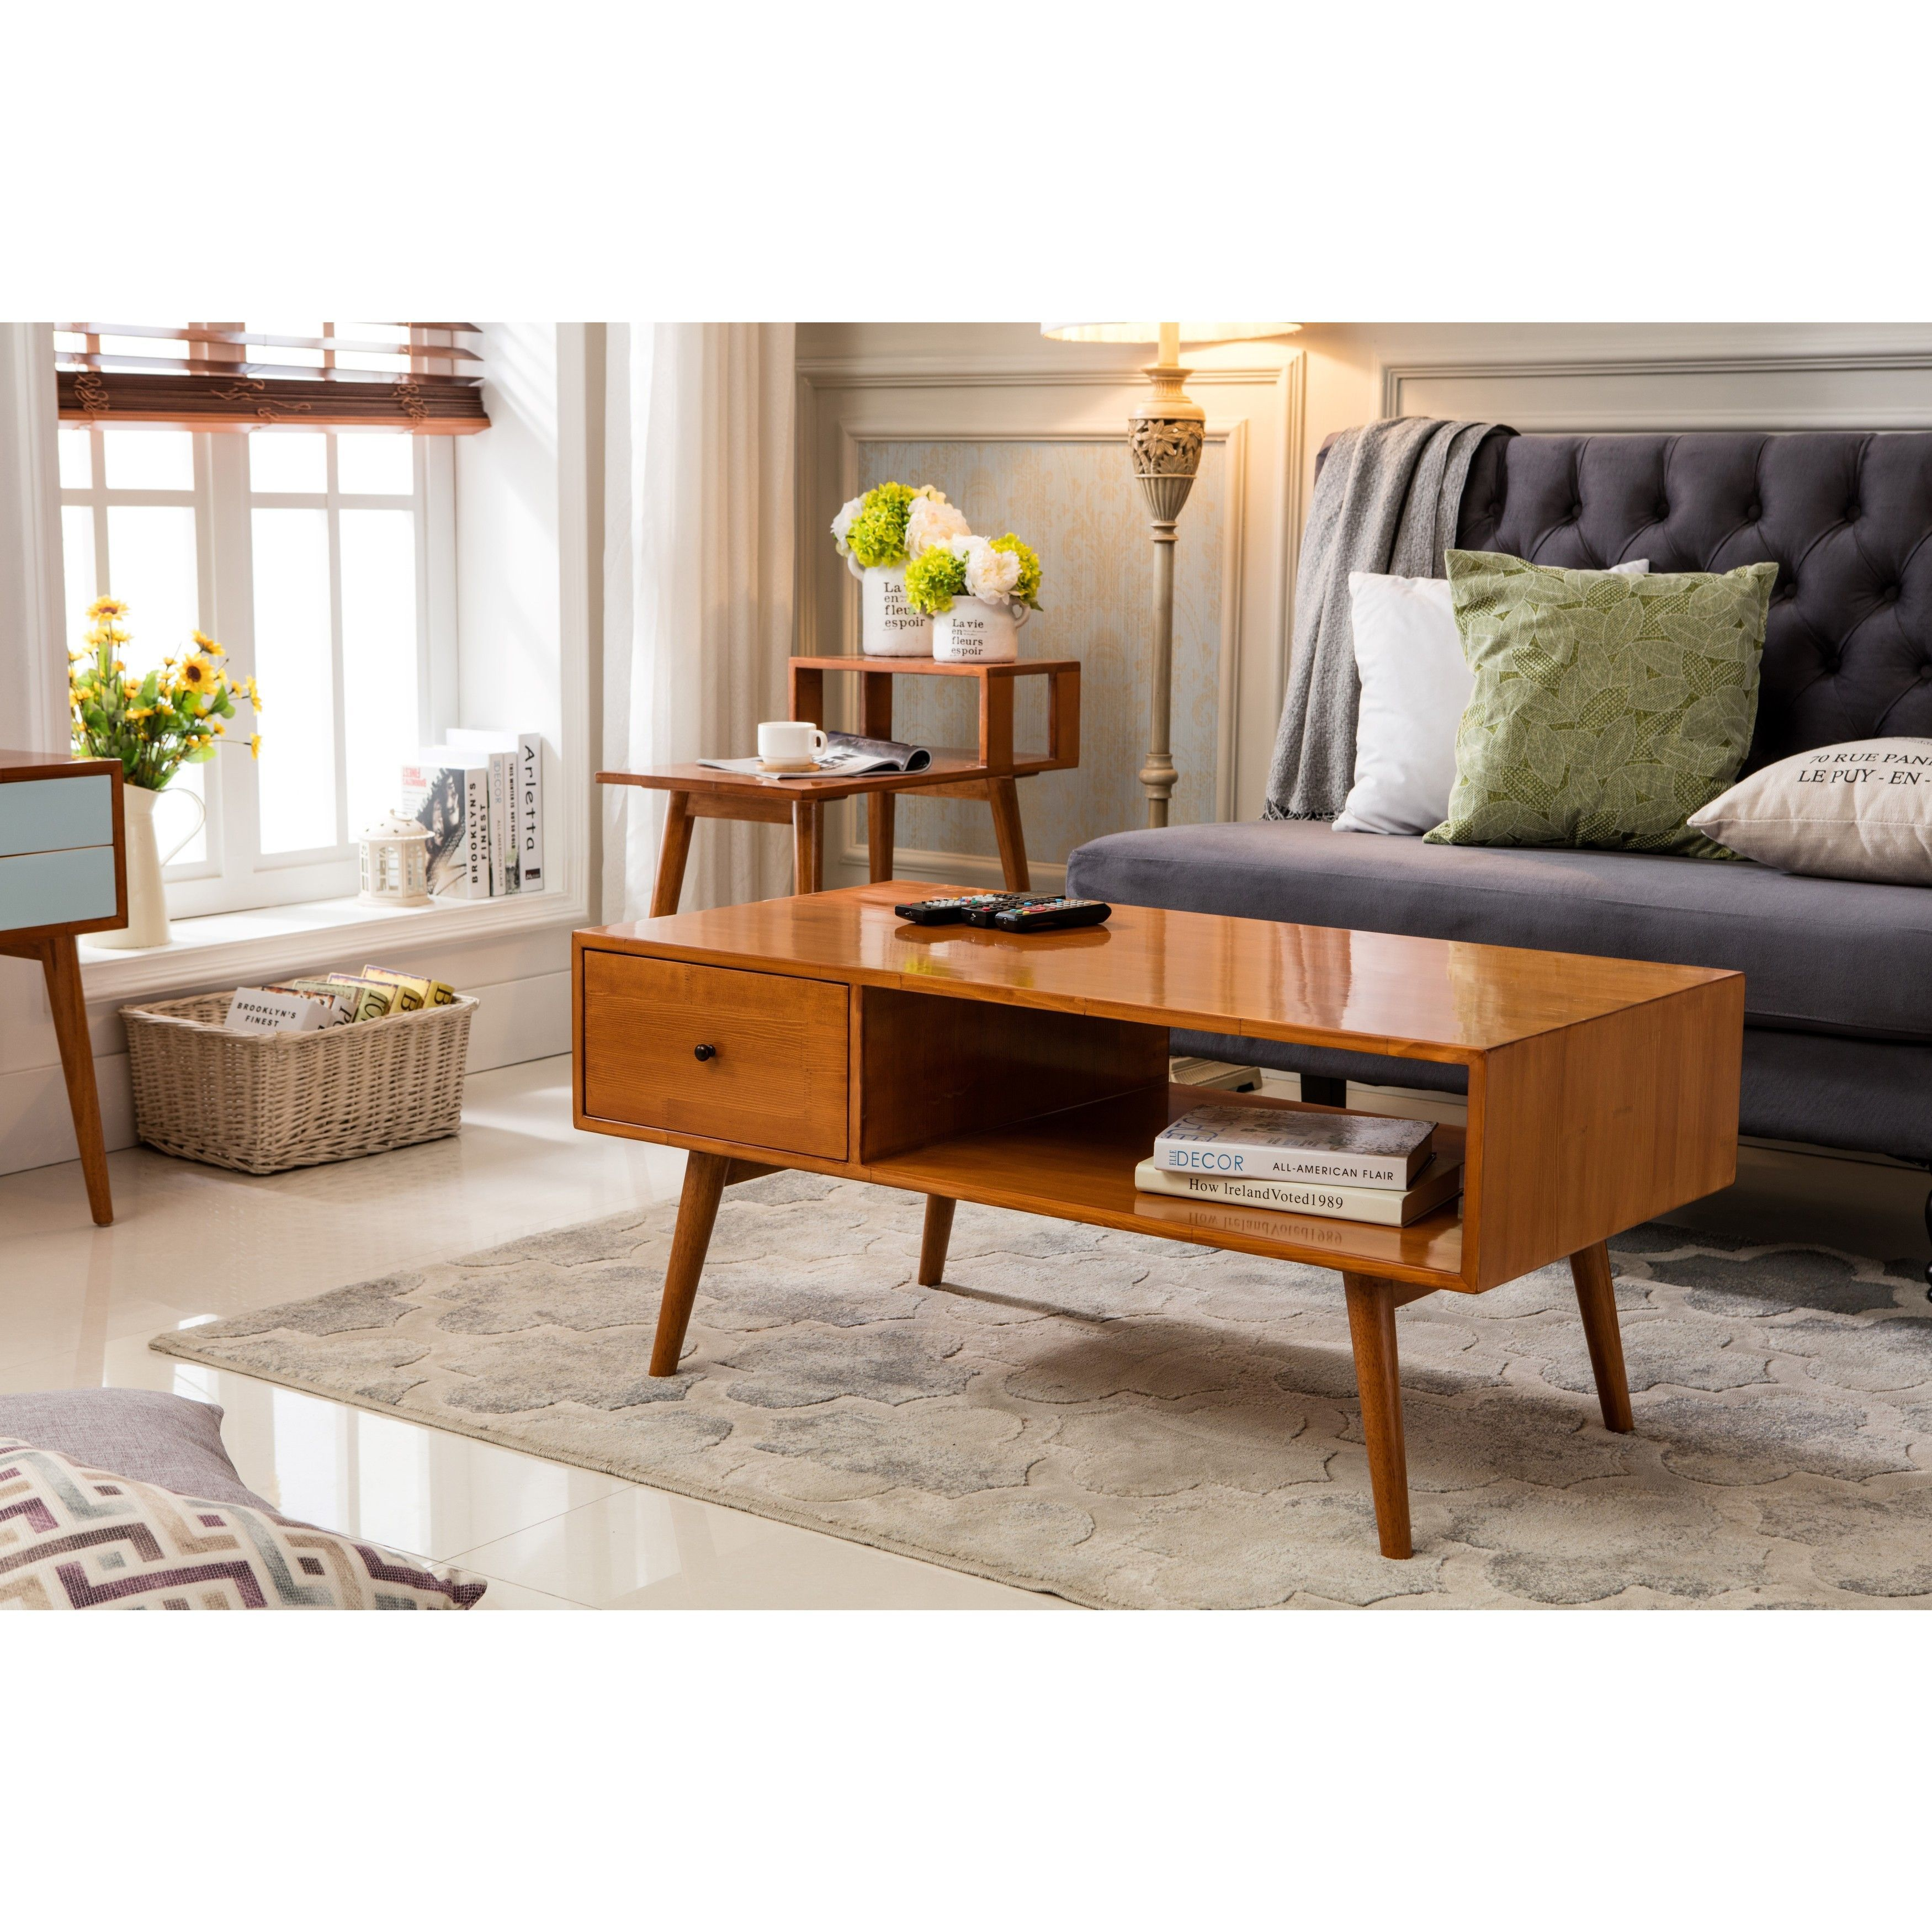 Porthos home bowie midcentury coffee brown table blue solid